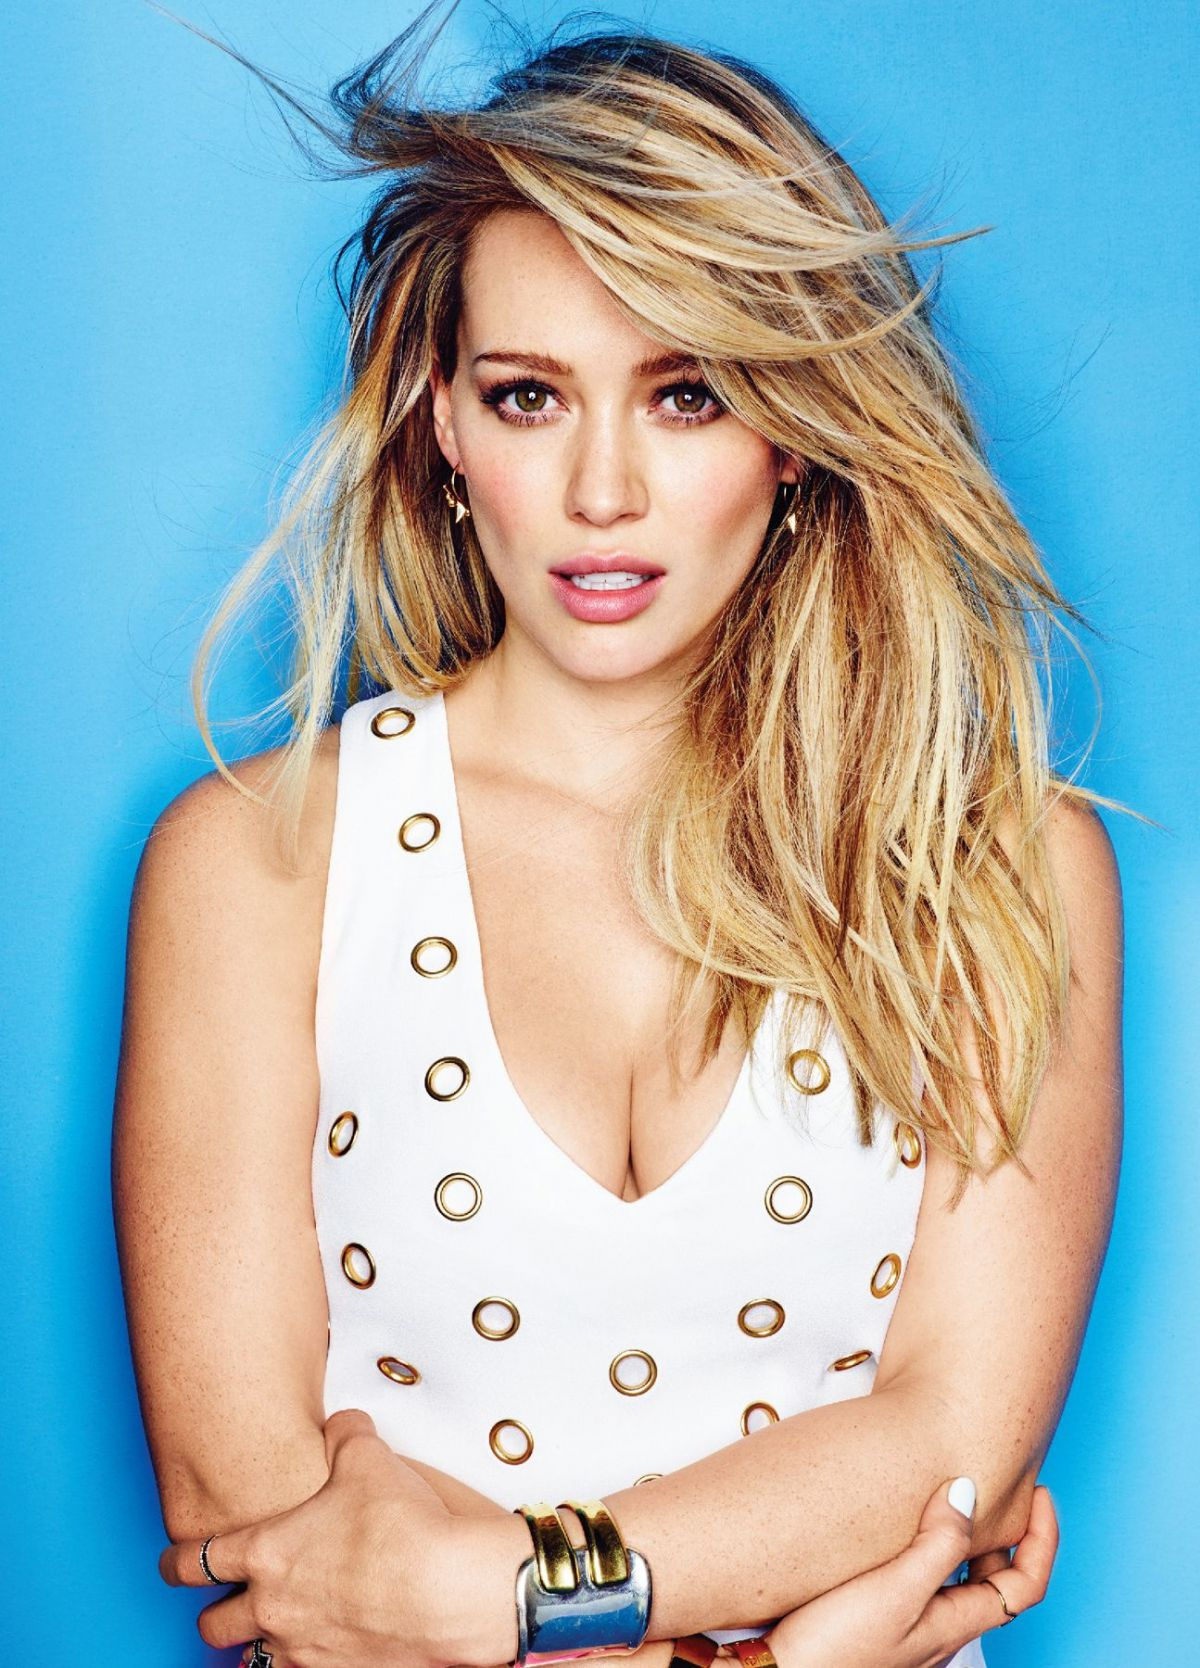 hilary duff - photo #22